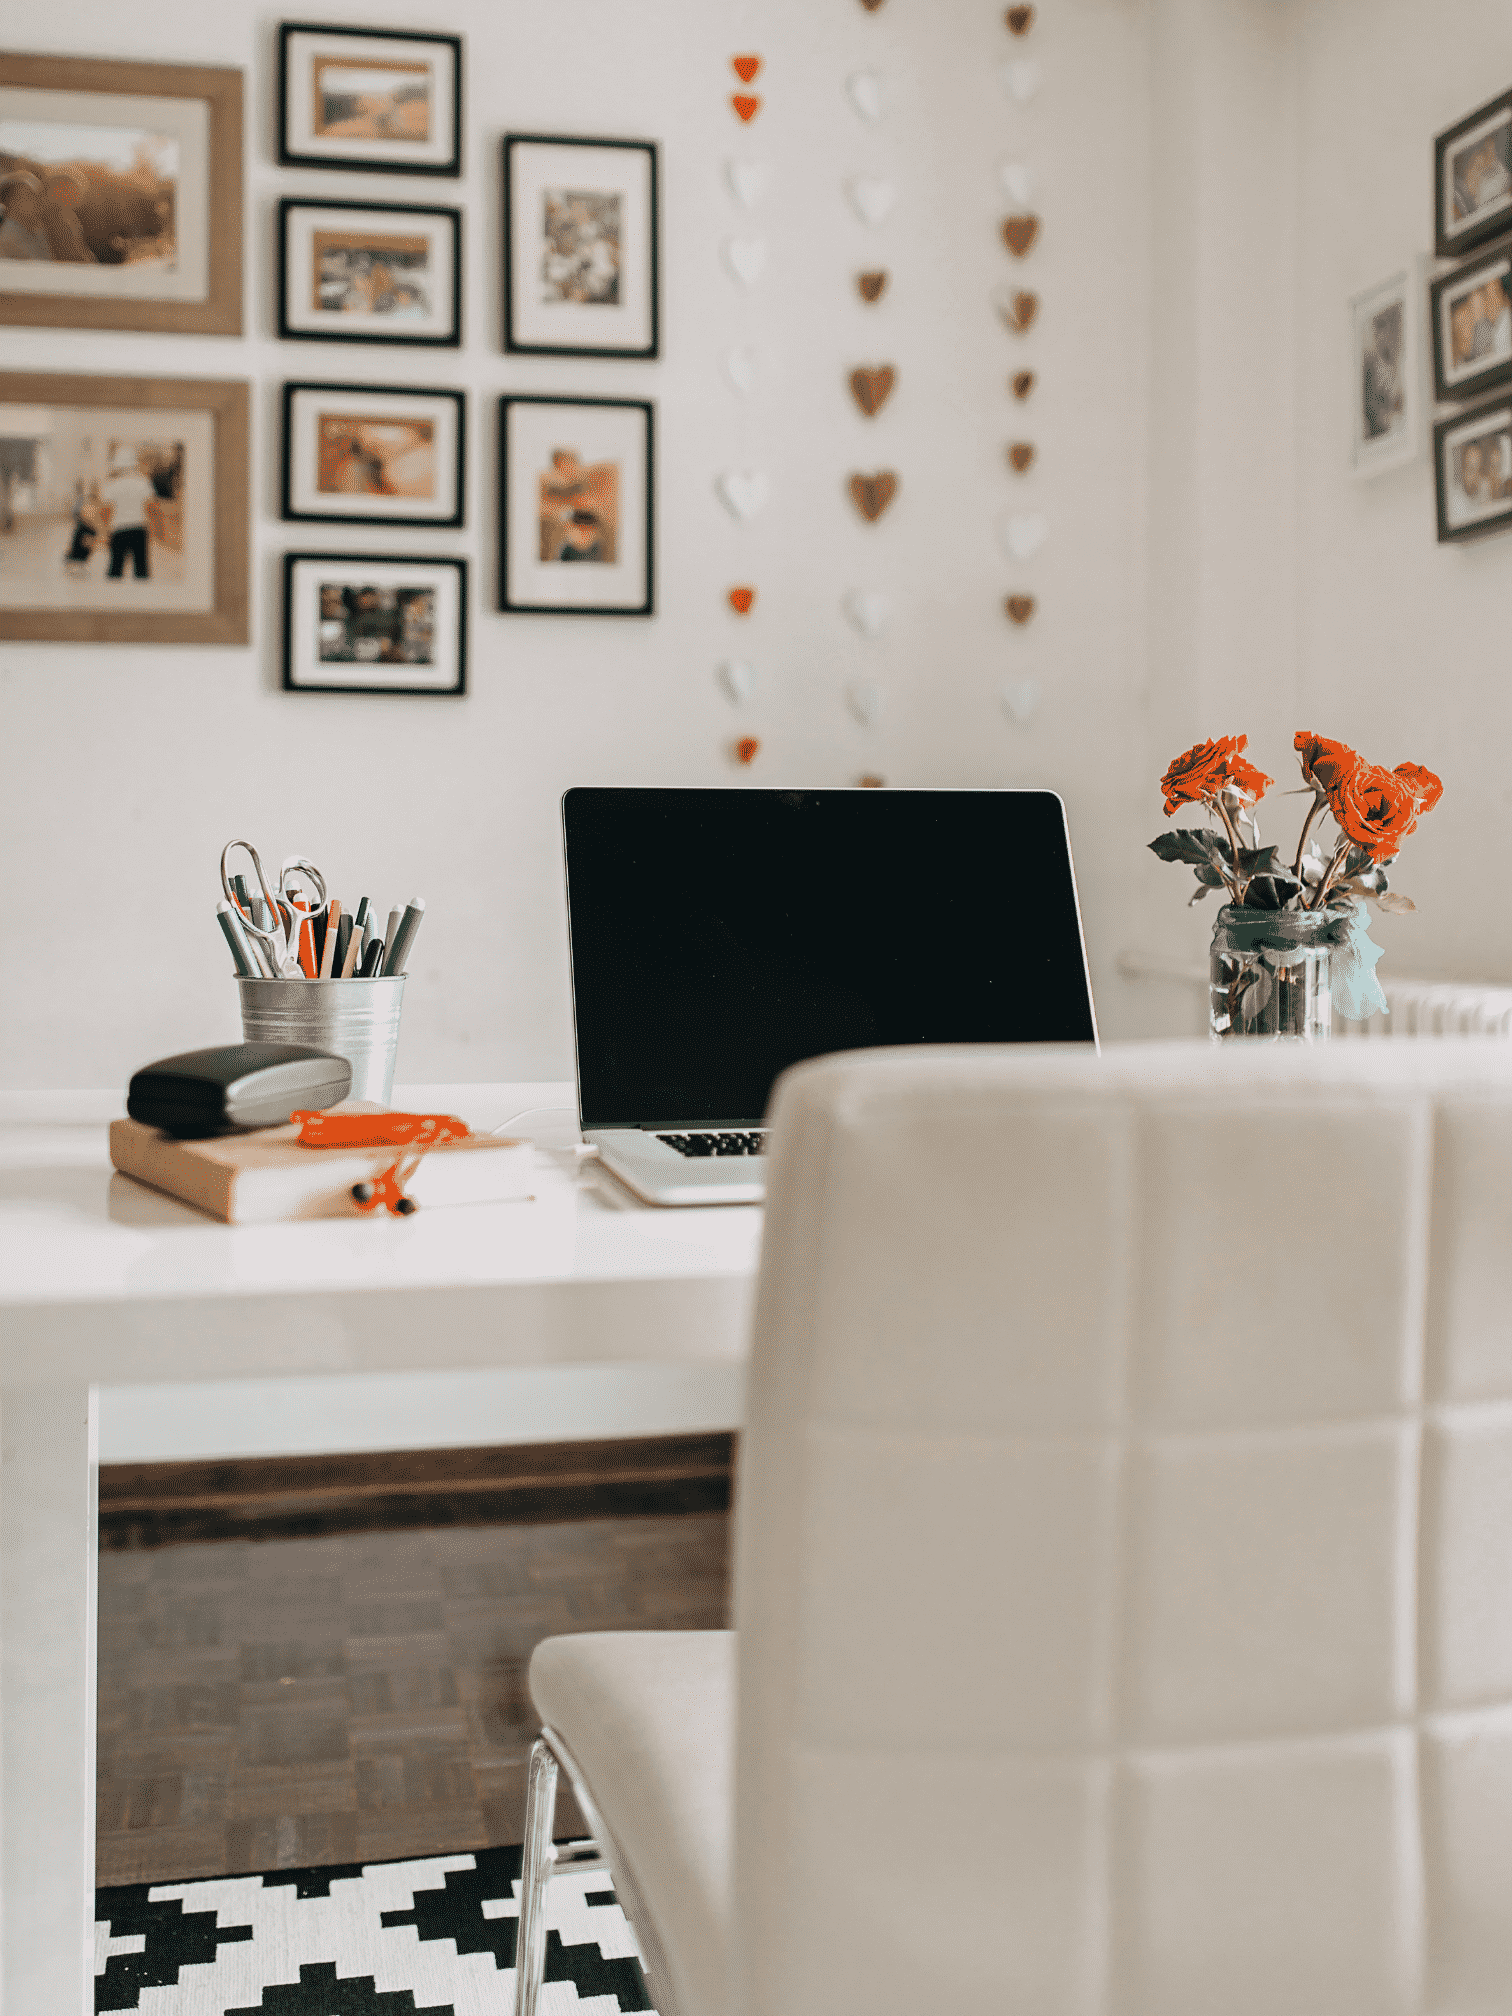 Desk at a home office with a plant and photos on the wall